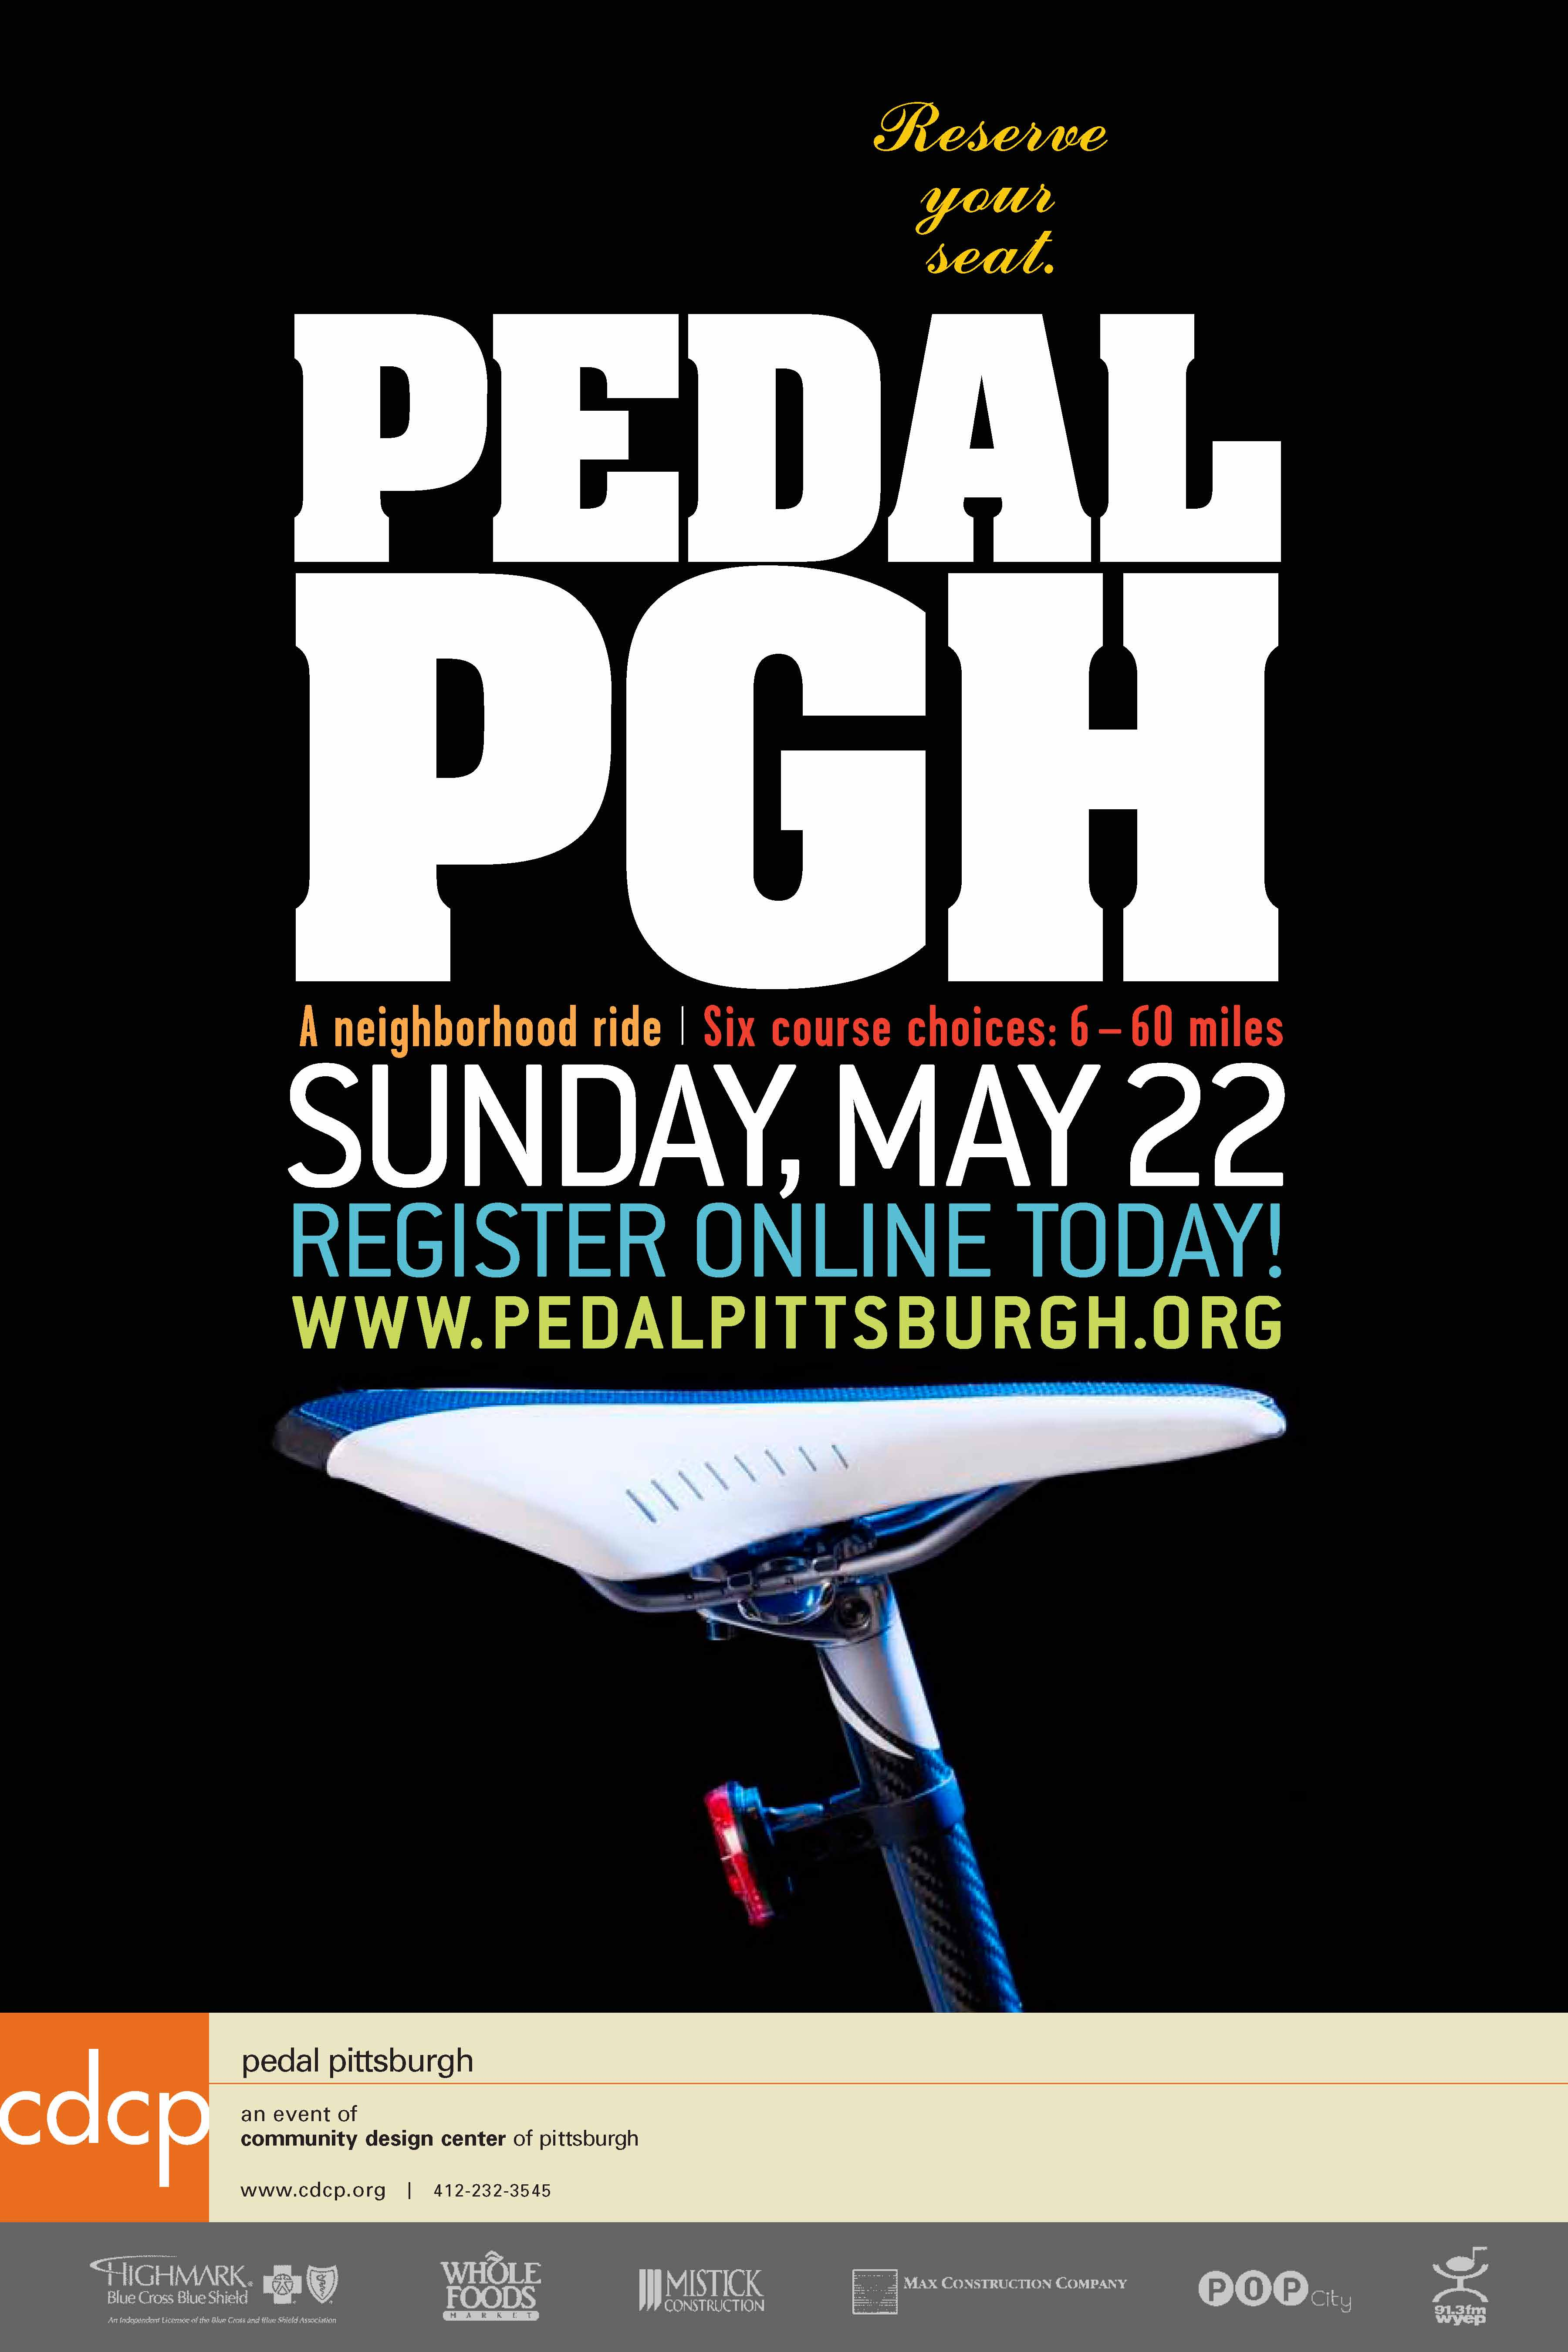 A Big Weekend for the Bicycle in Pittsburgh